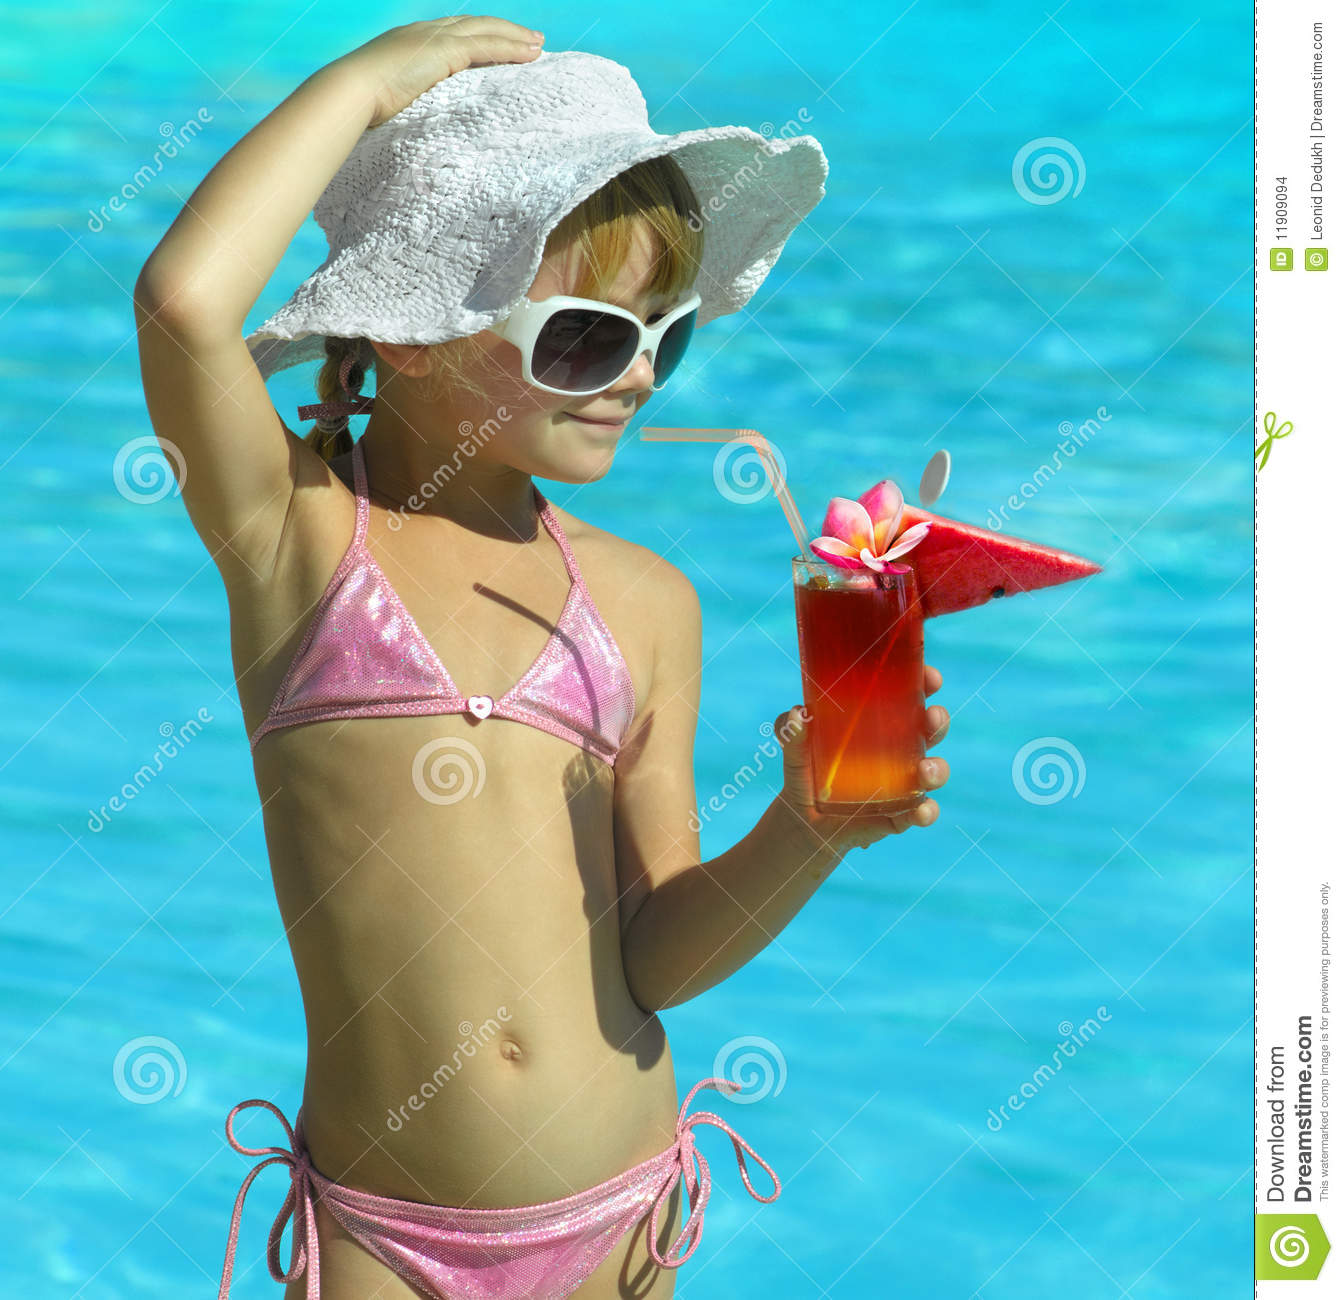 girl swimming in pool clipart